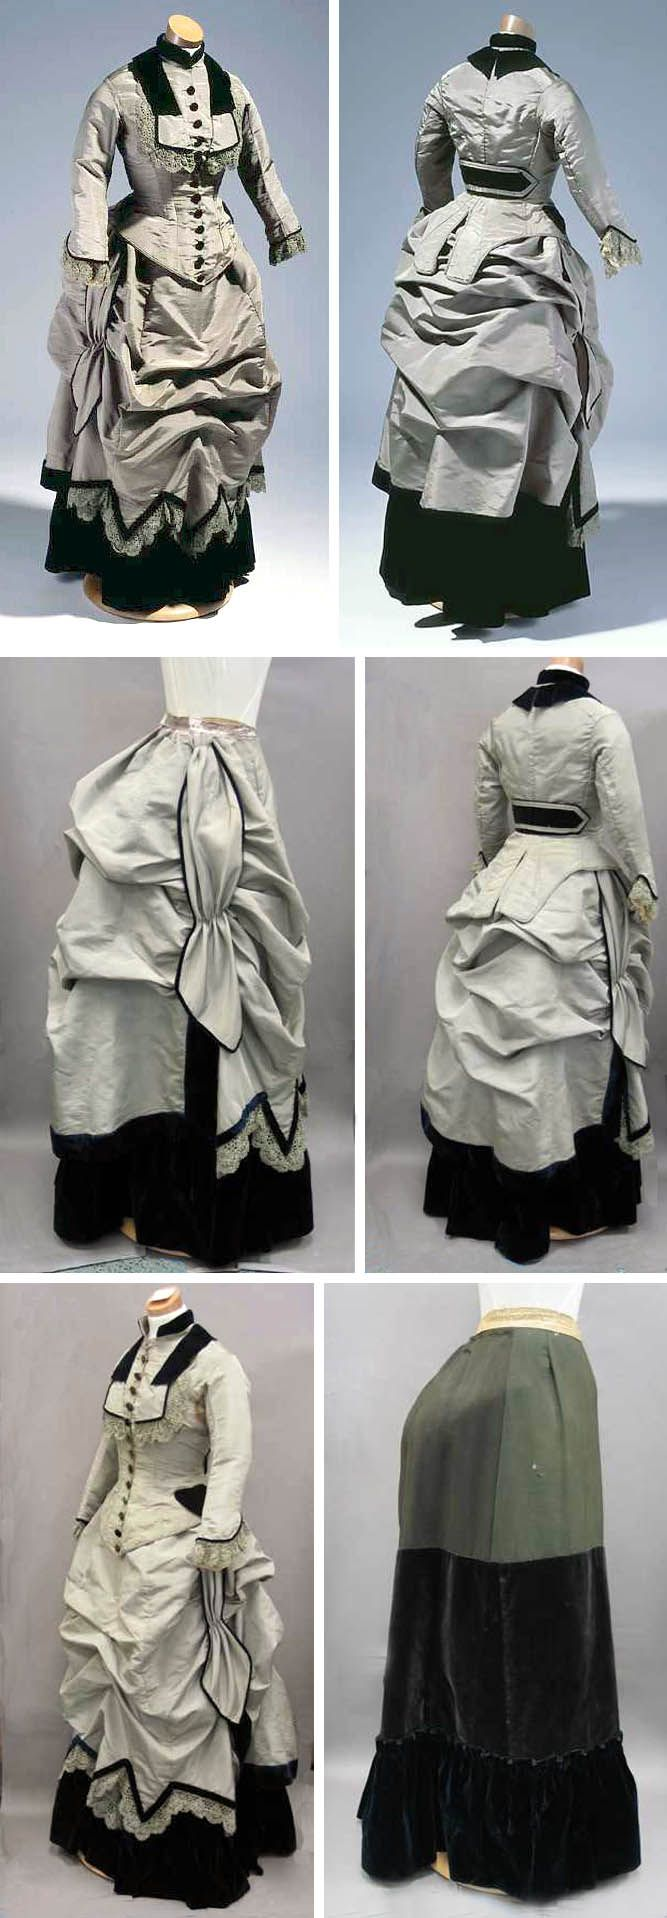 Three-piece bustle dress (jacket, skirt, underskirt), ca. 1875, of gray faille with underskirt and trim of dark blue velvet. North Carolina Department of Cultural Resources